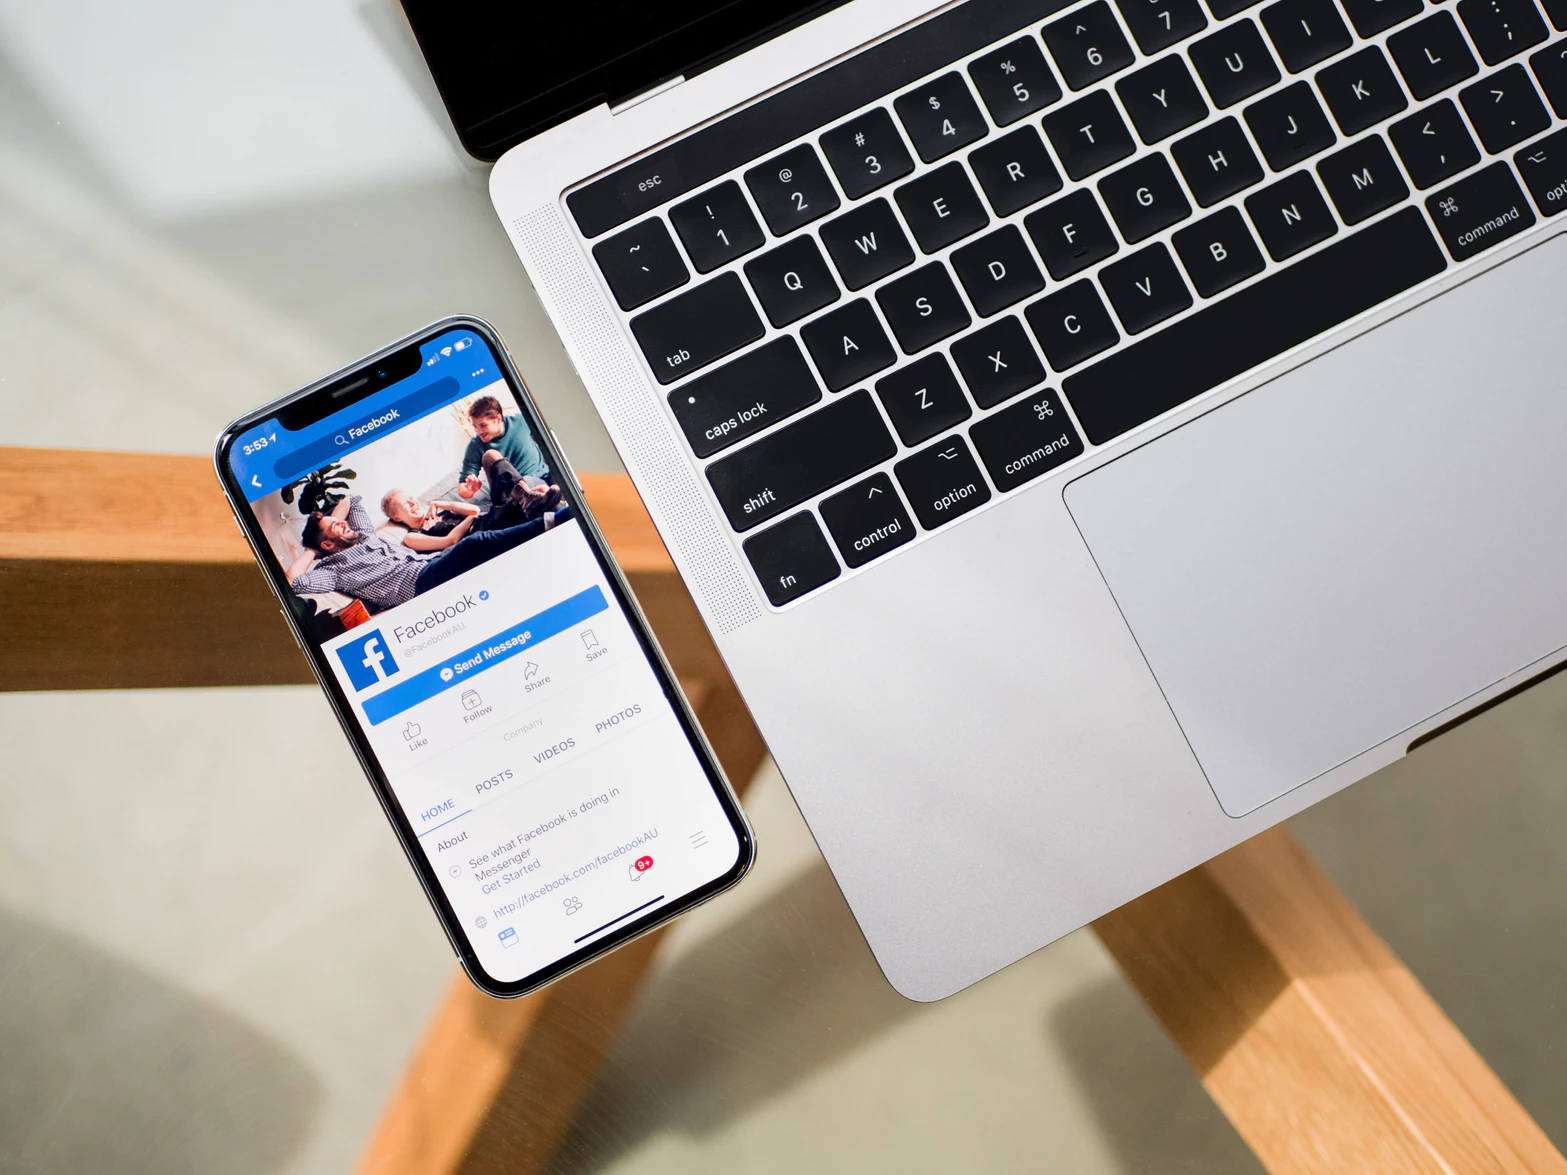 8 Tips for Outsmarting the Facebook Algorithm to Boost Engagement